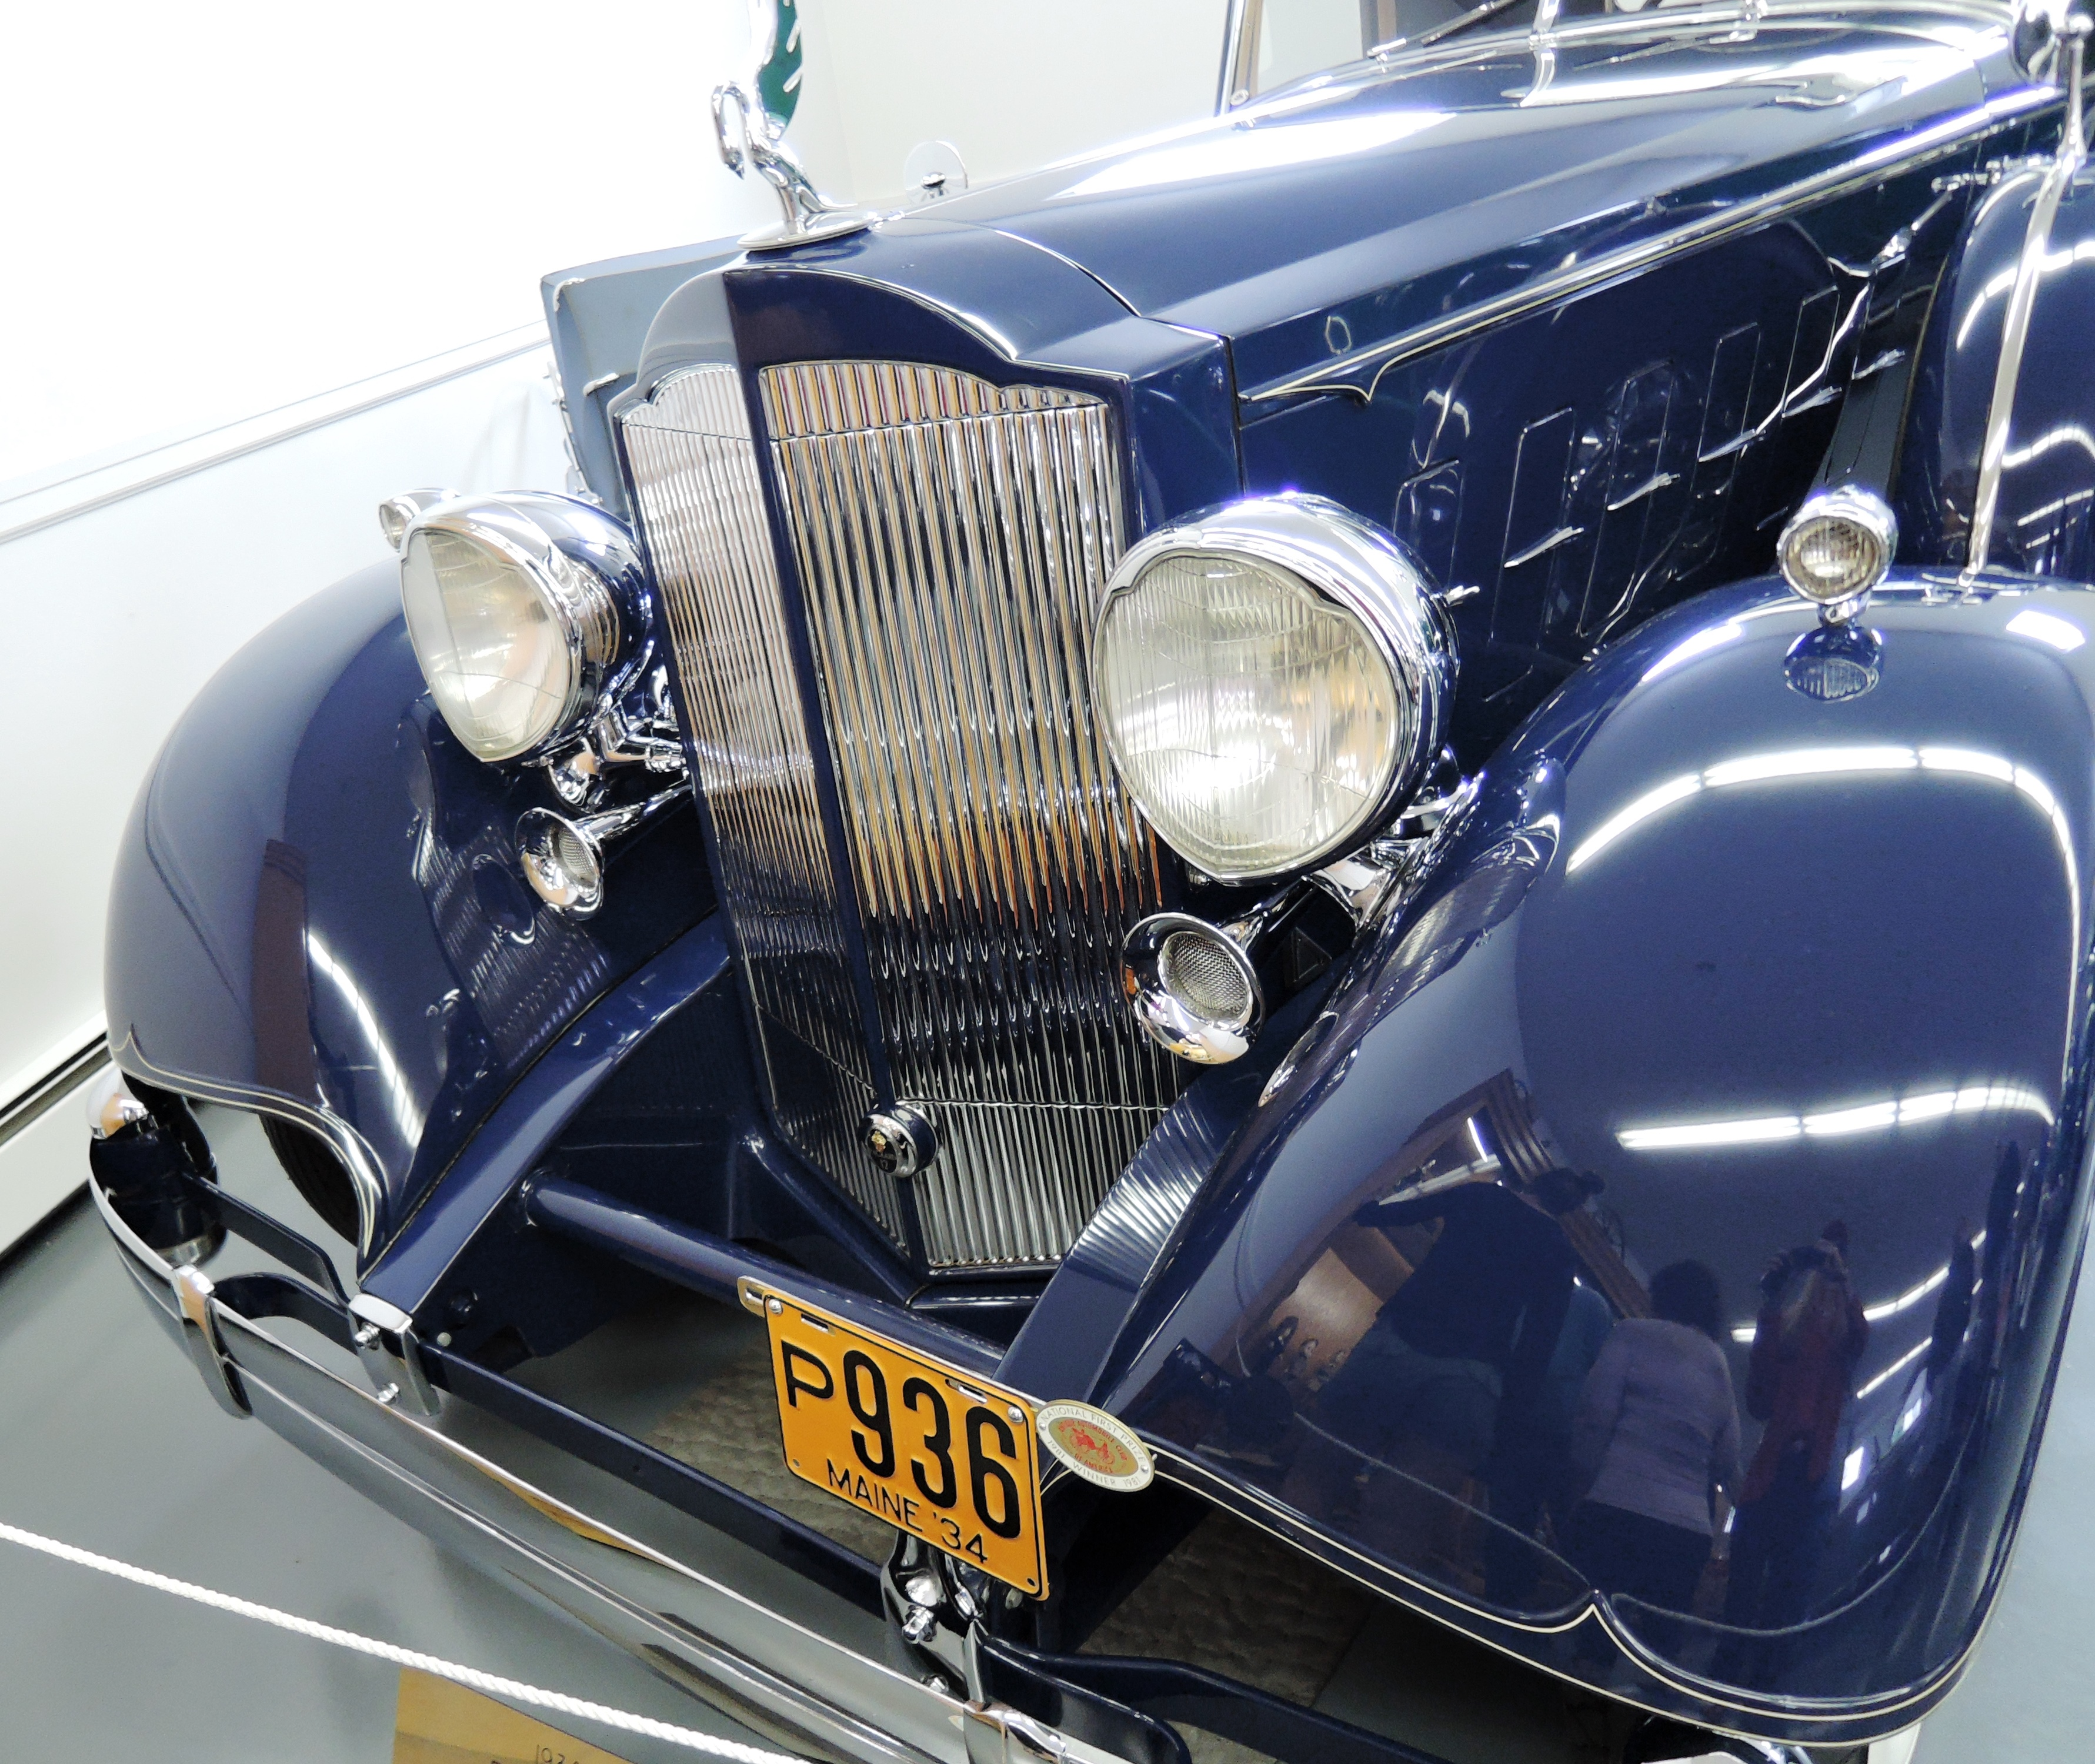 blue 1934 Packard Twelve Stationary Coupe - bahre car collection